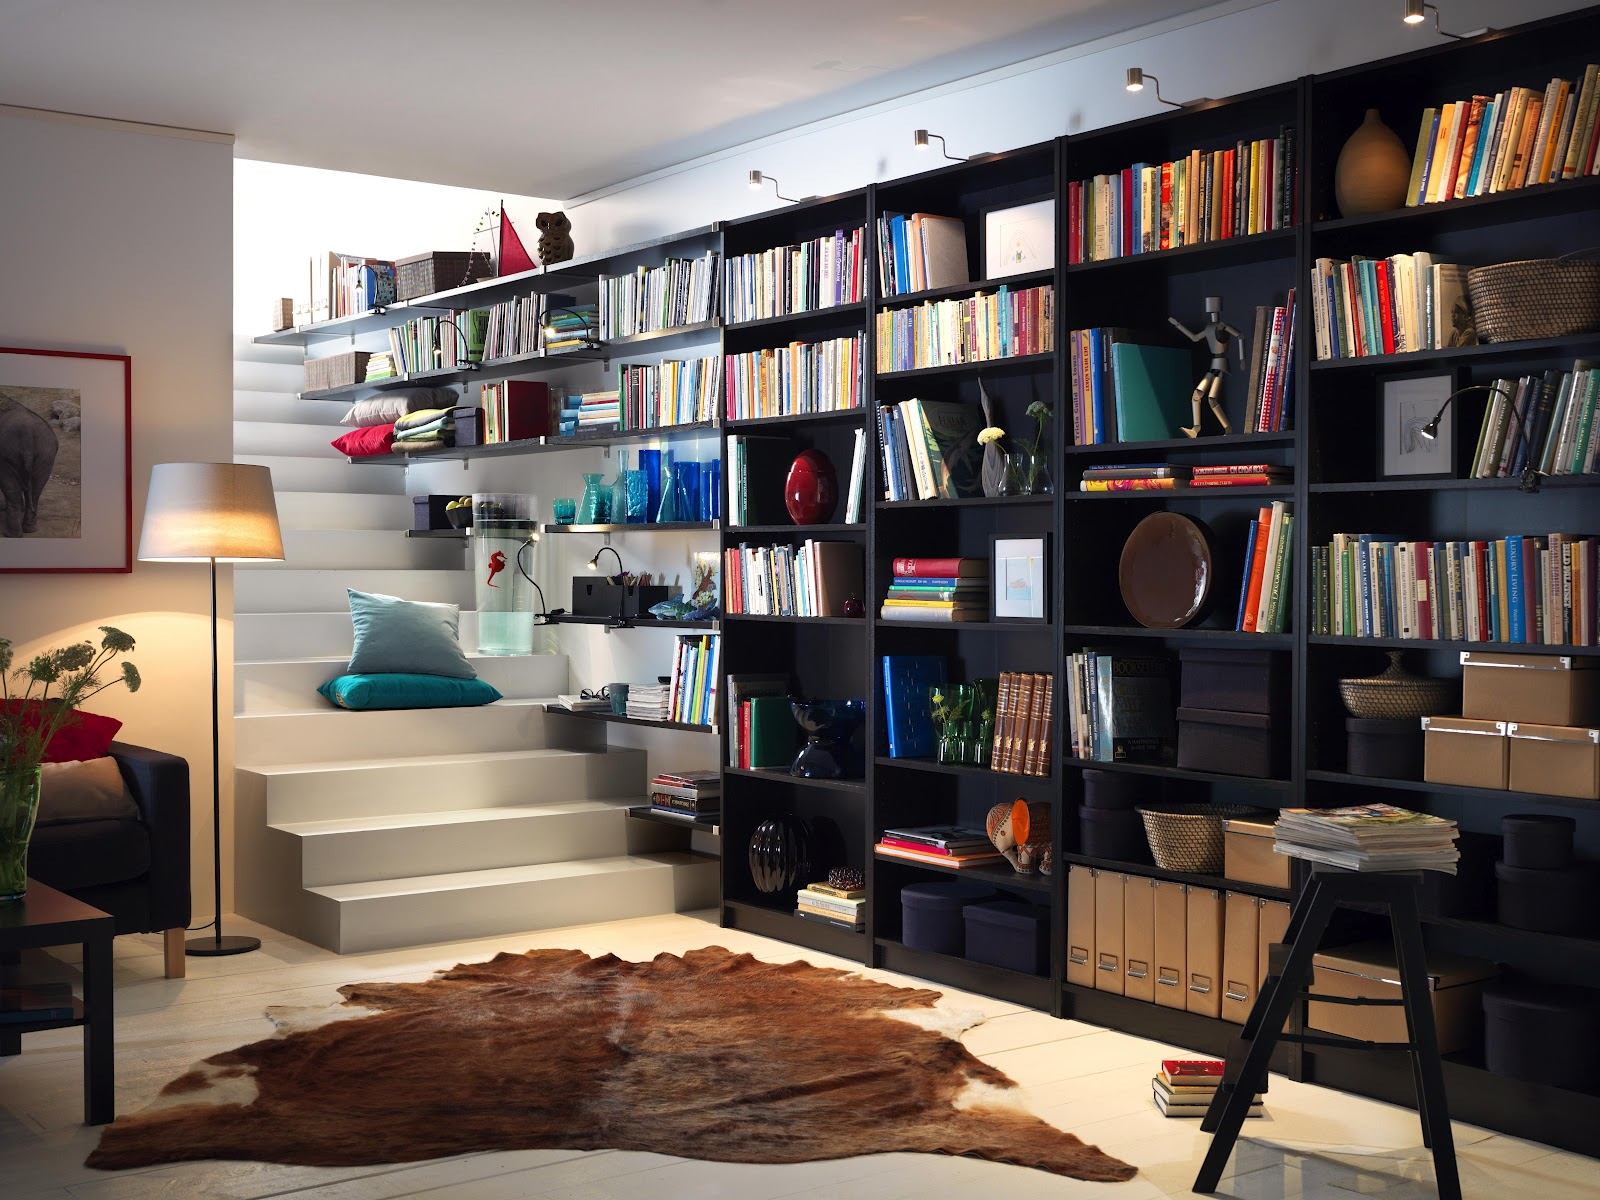 great-wall-ikea-creative-bookshelves-structure-performing-grand-mounted-wall-shelves-and-shelving-unit-combination-on-black-tones-along-with-led-focus-lighting-ideas-ikea-creative-bookshelves-home-dec